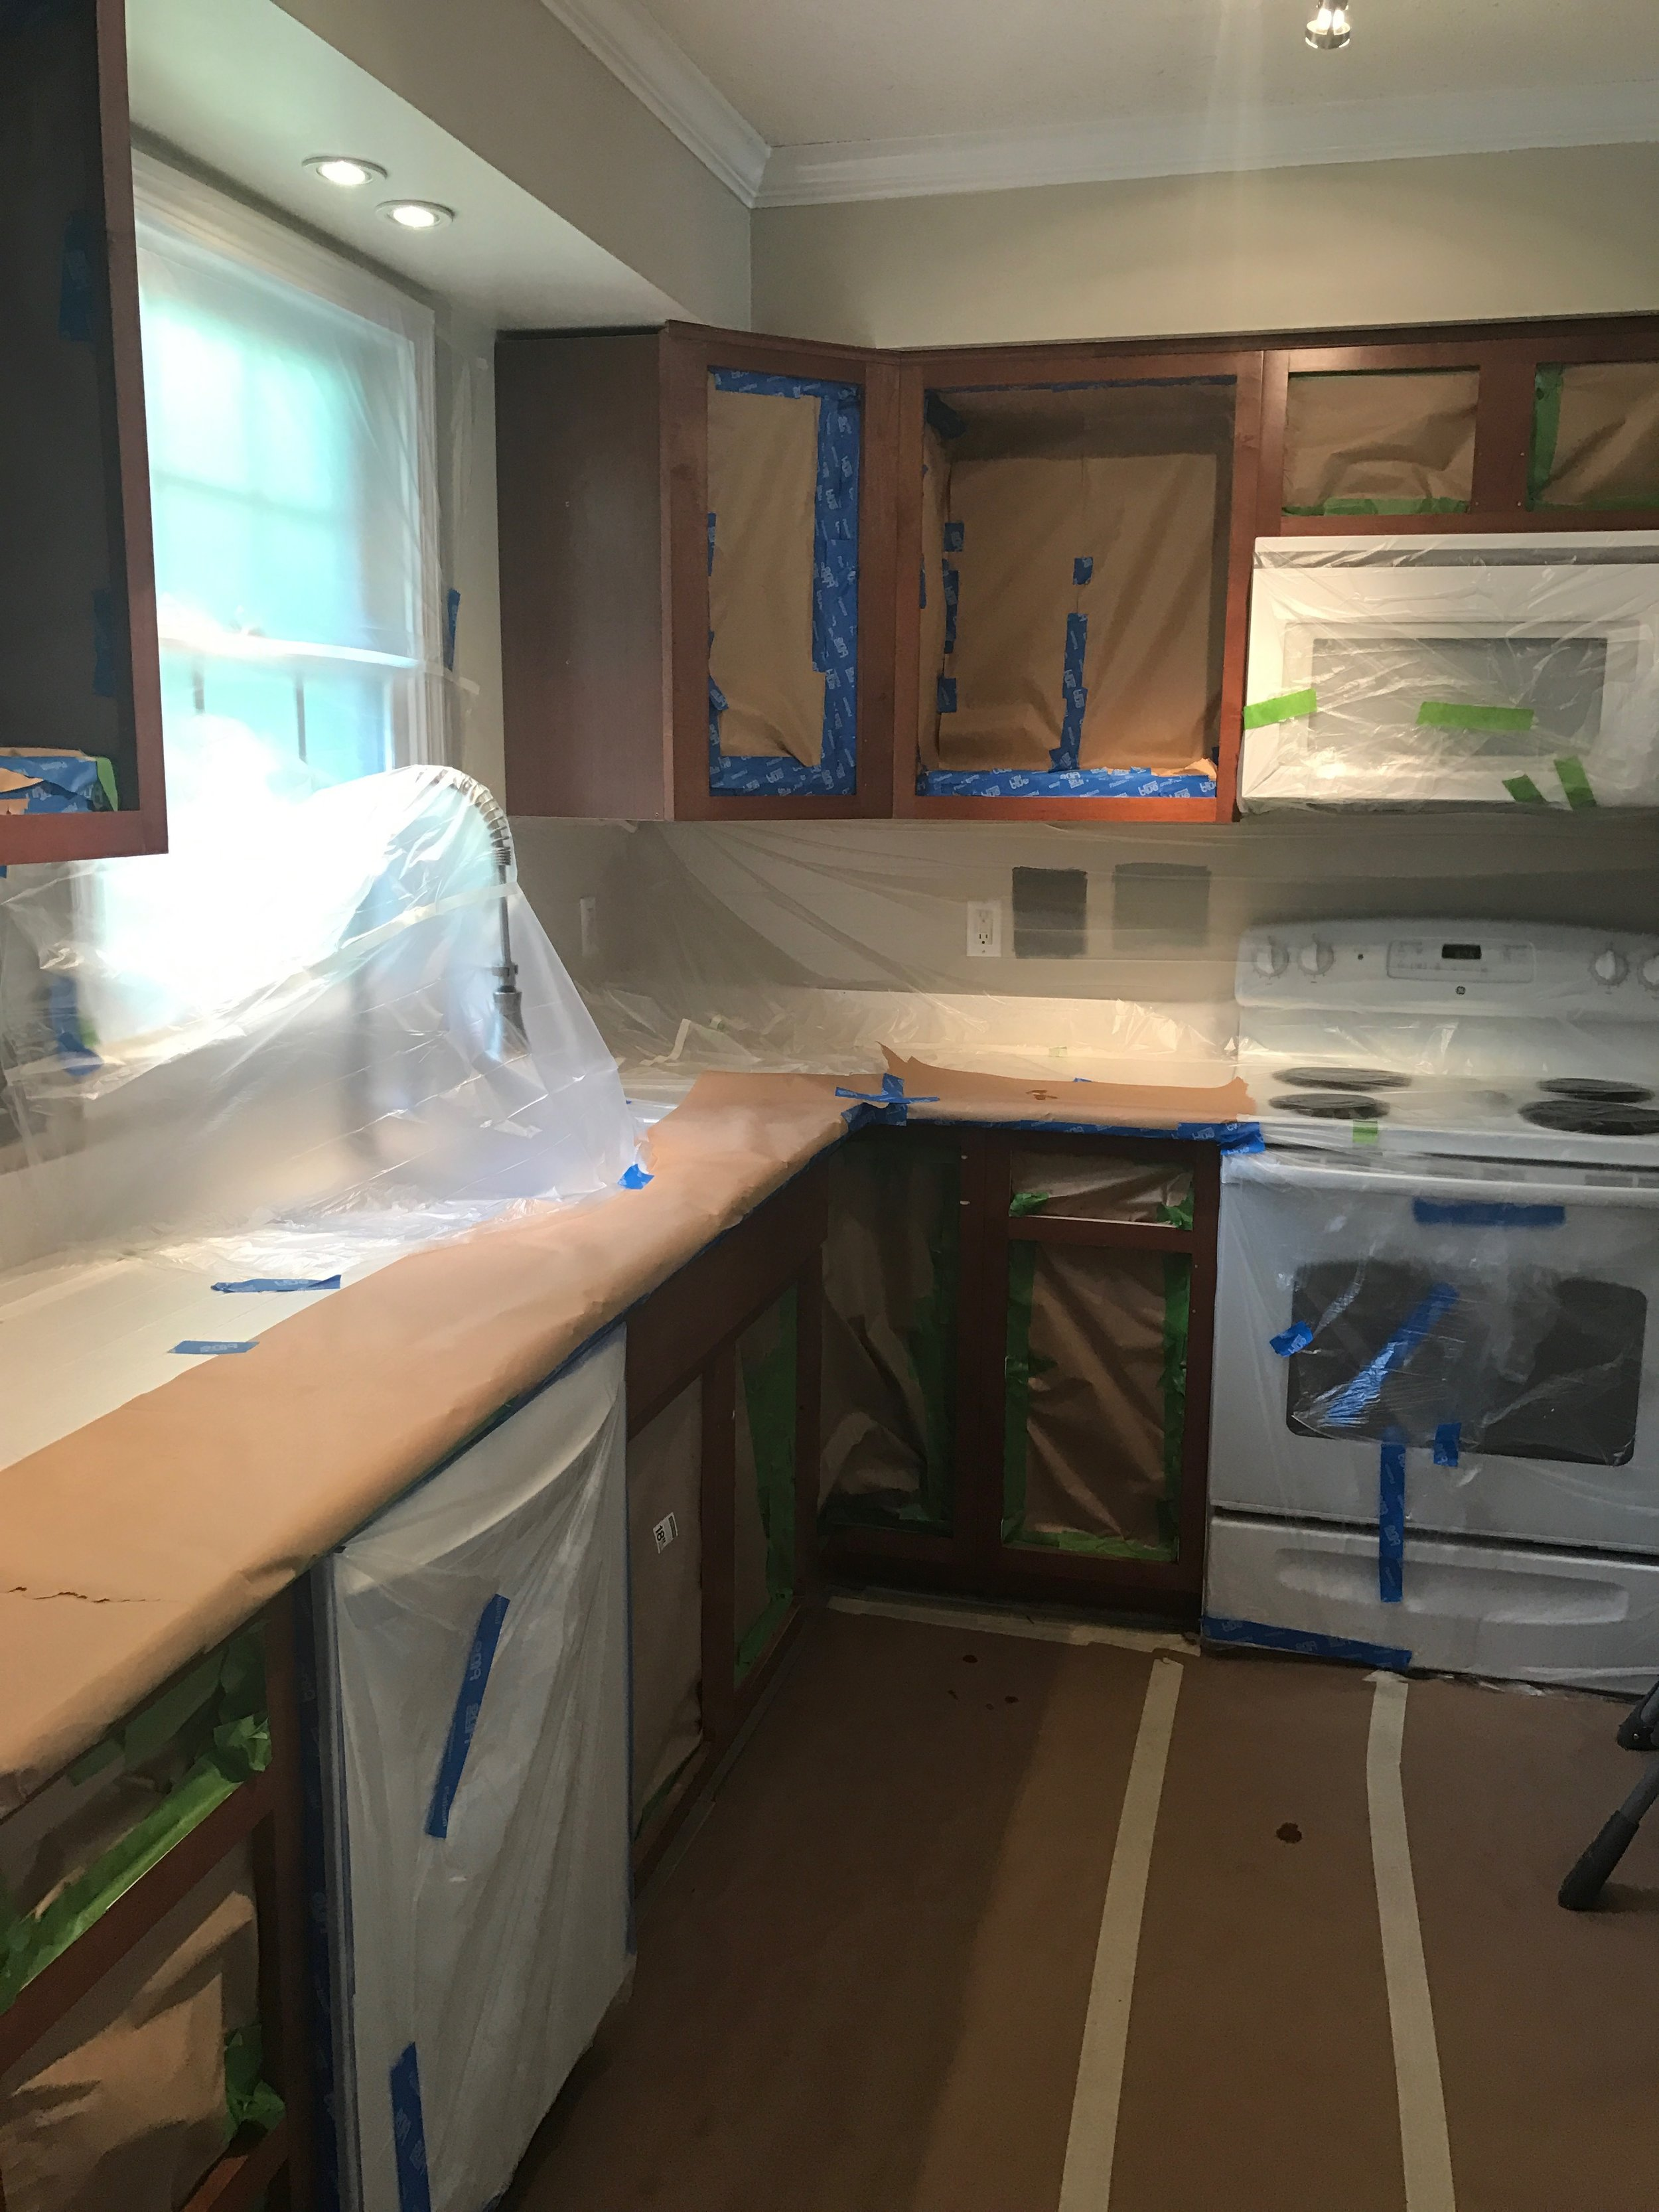 Painted_Kitchen_Cabinets_Prep_Taping_Off_To_Paint.JPG